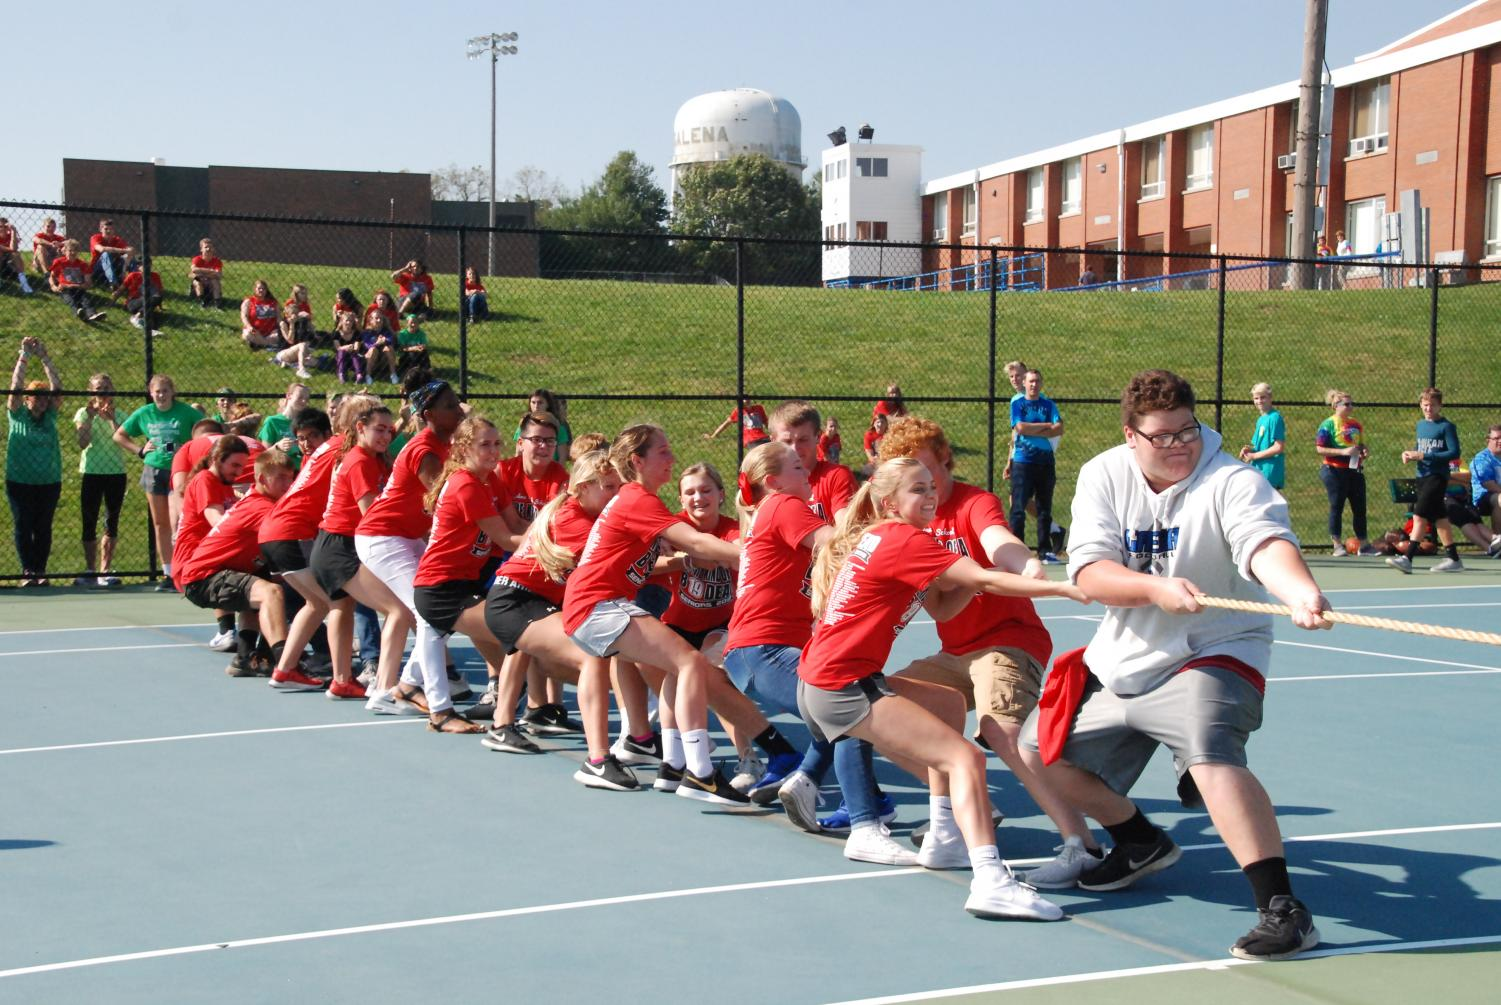 Top Dogs: The senior class works together and dominates in tug of war.